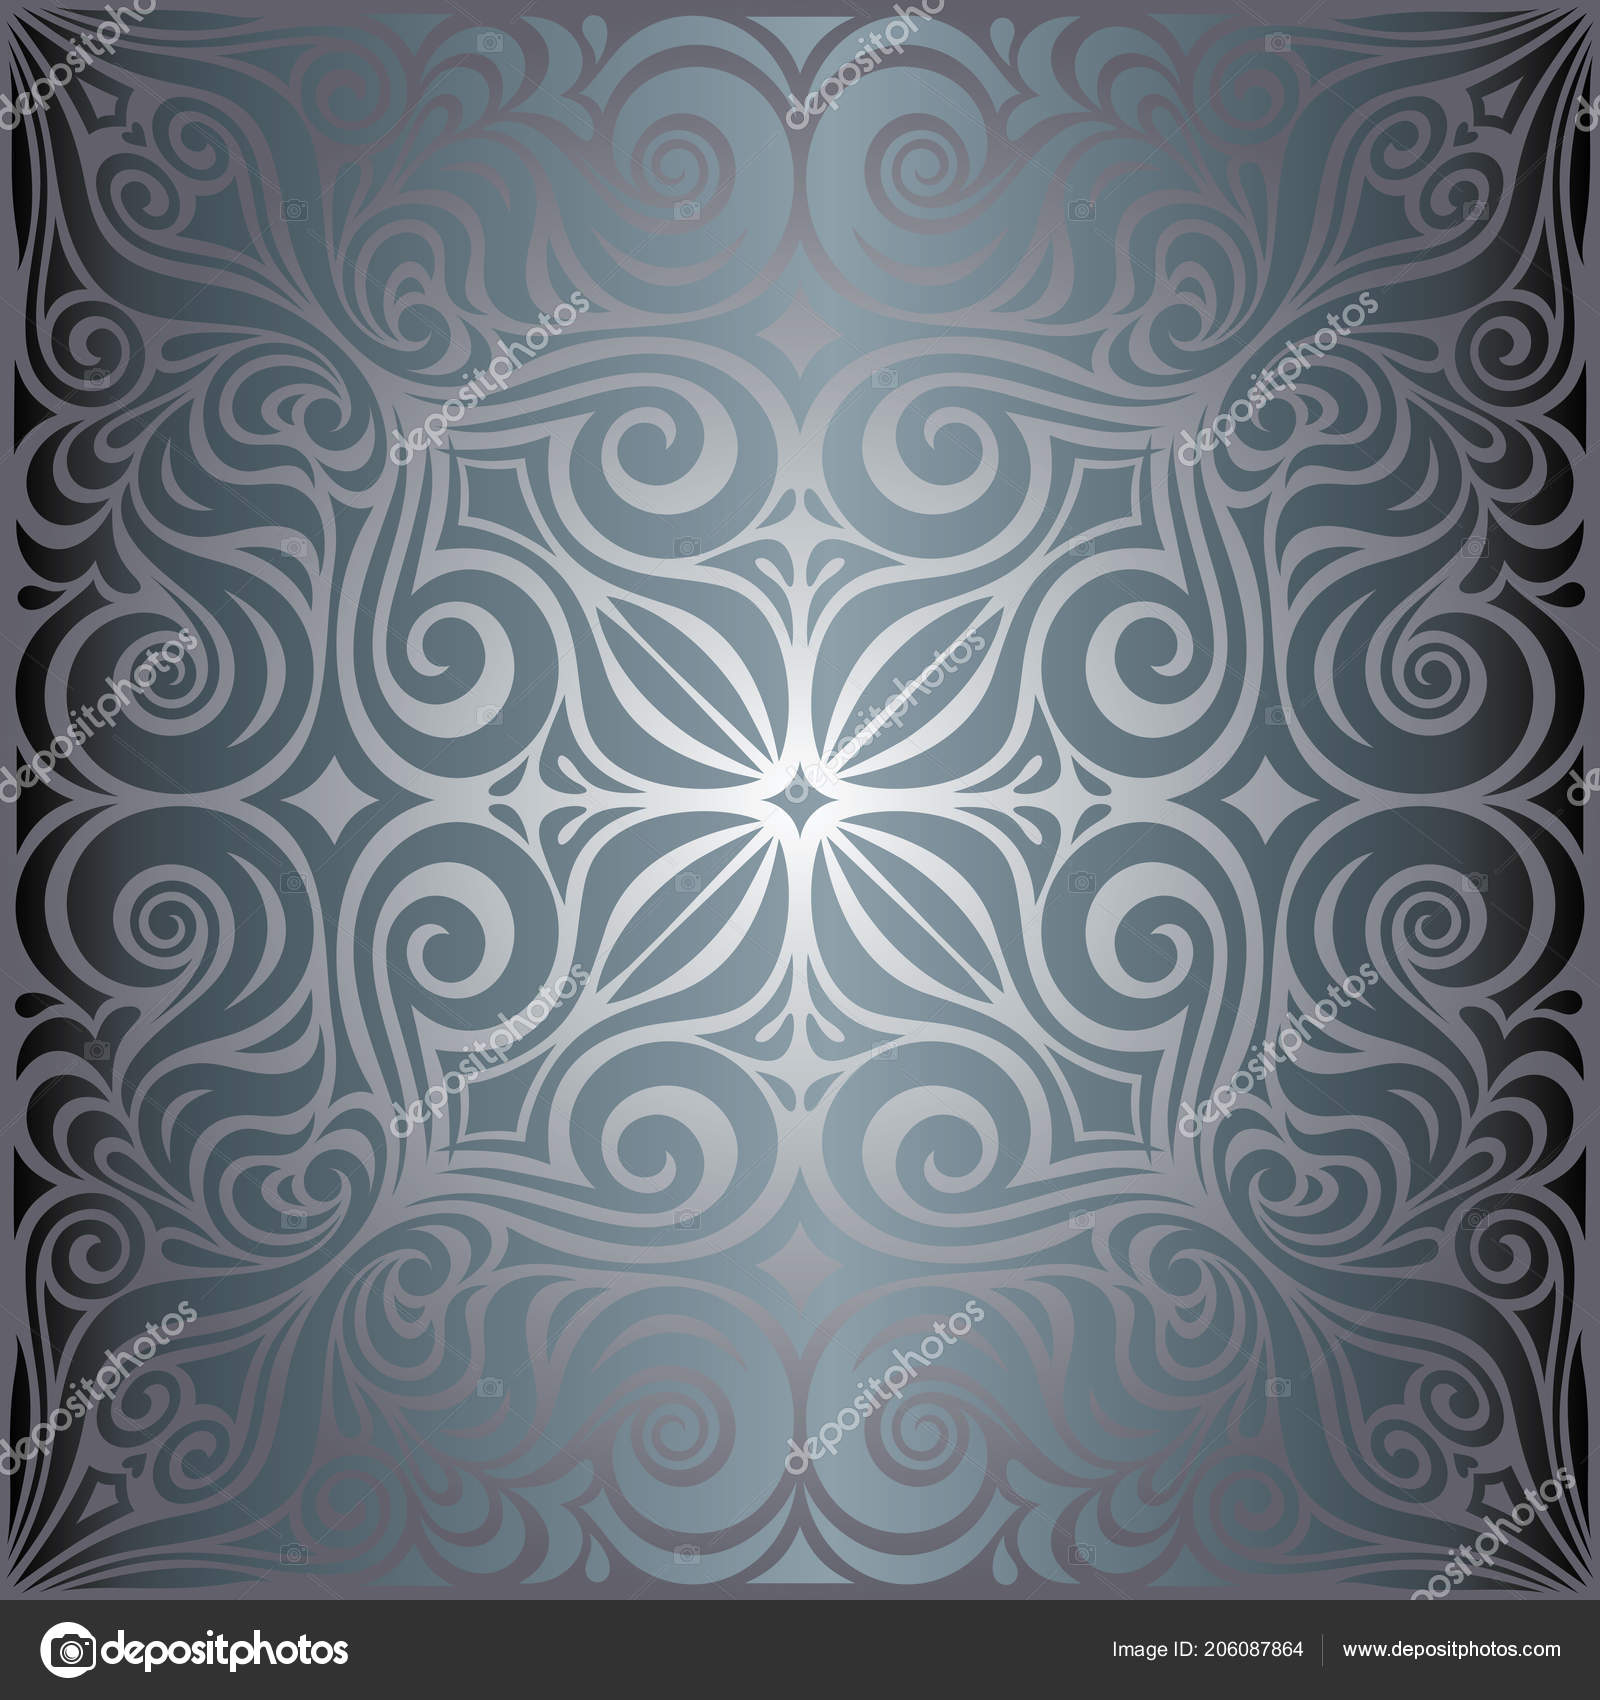 Silver Flowers Floral Shiny Decorative Vintage Wallpaper Background Trendy Fashion Stock Vector